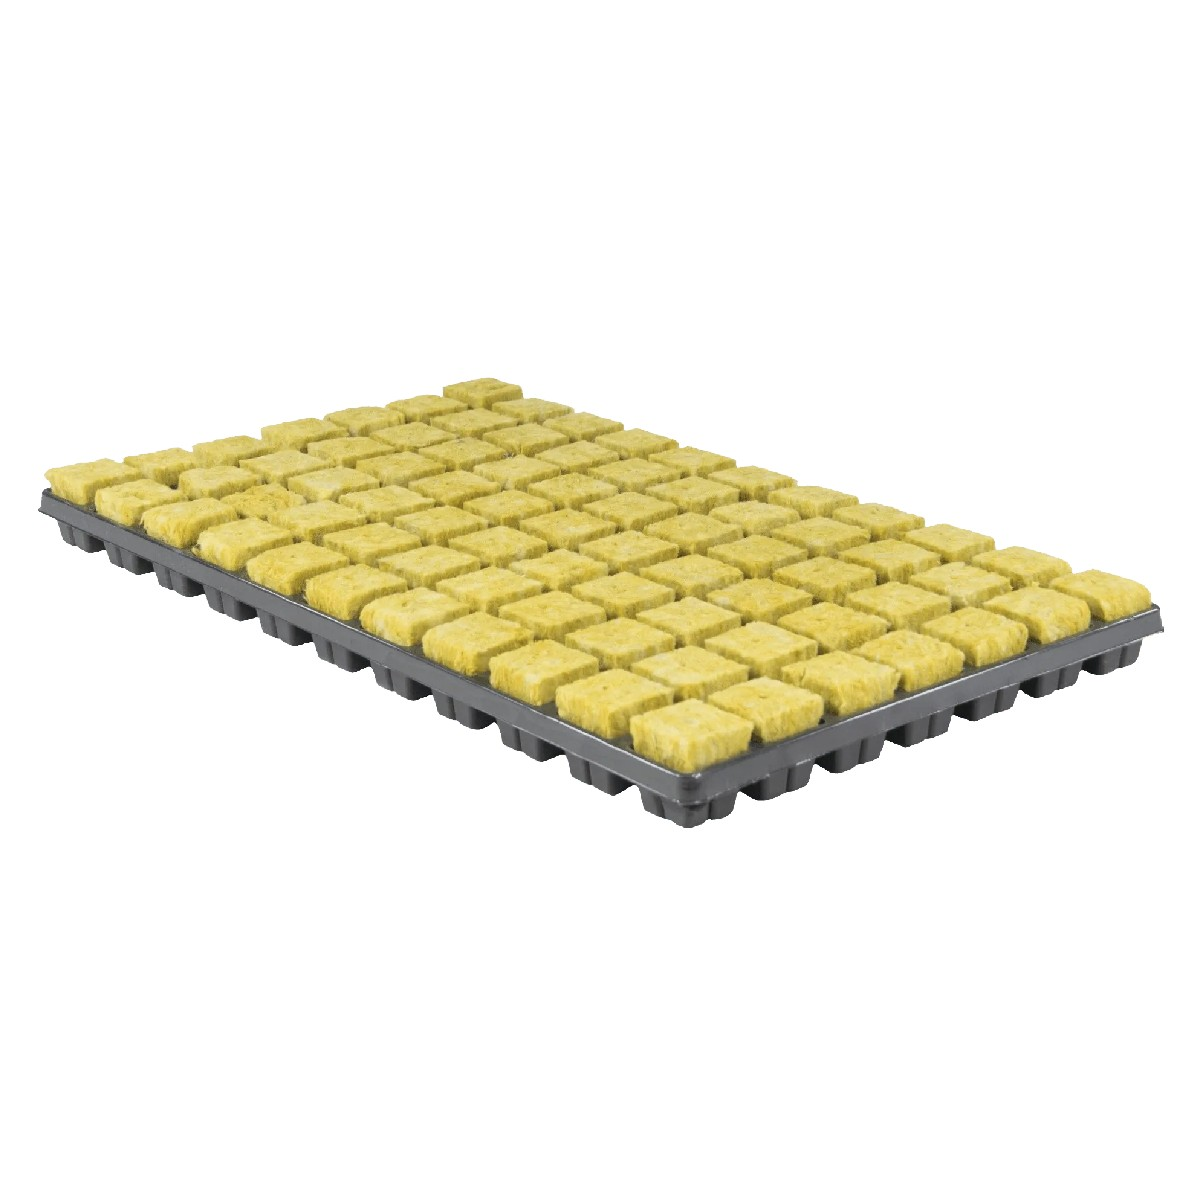 Cultiwool-Seed-Tray